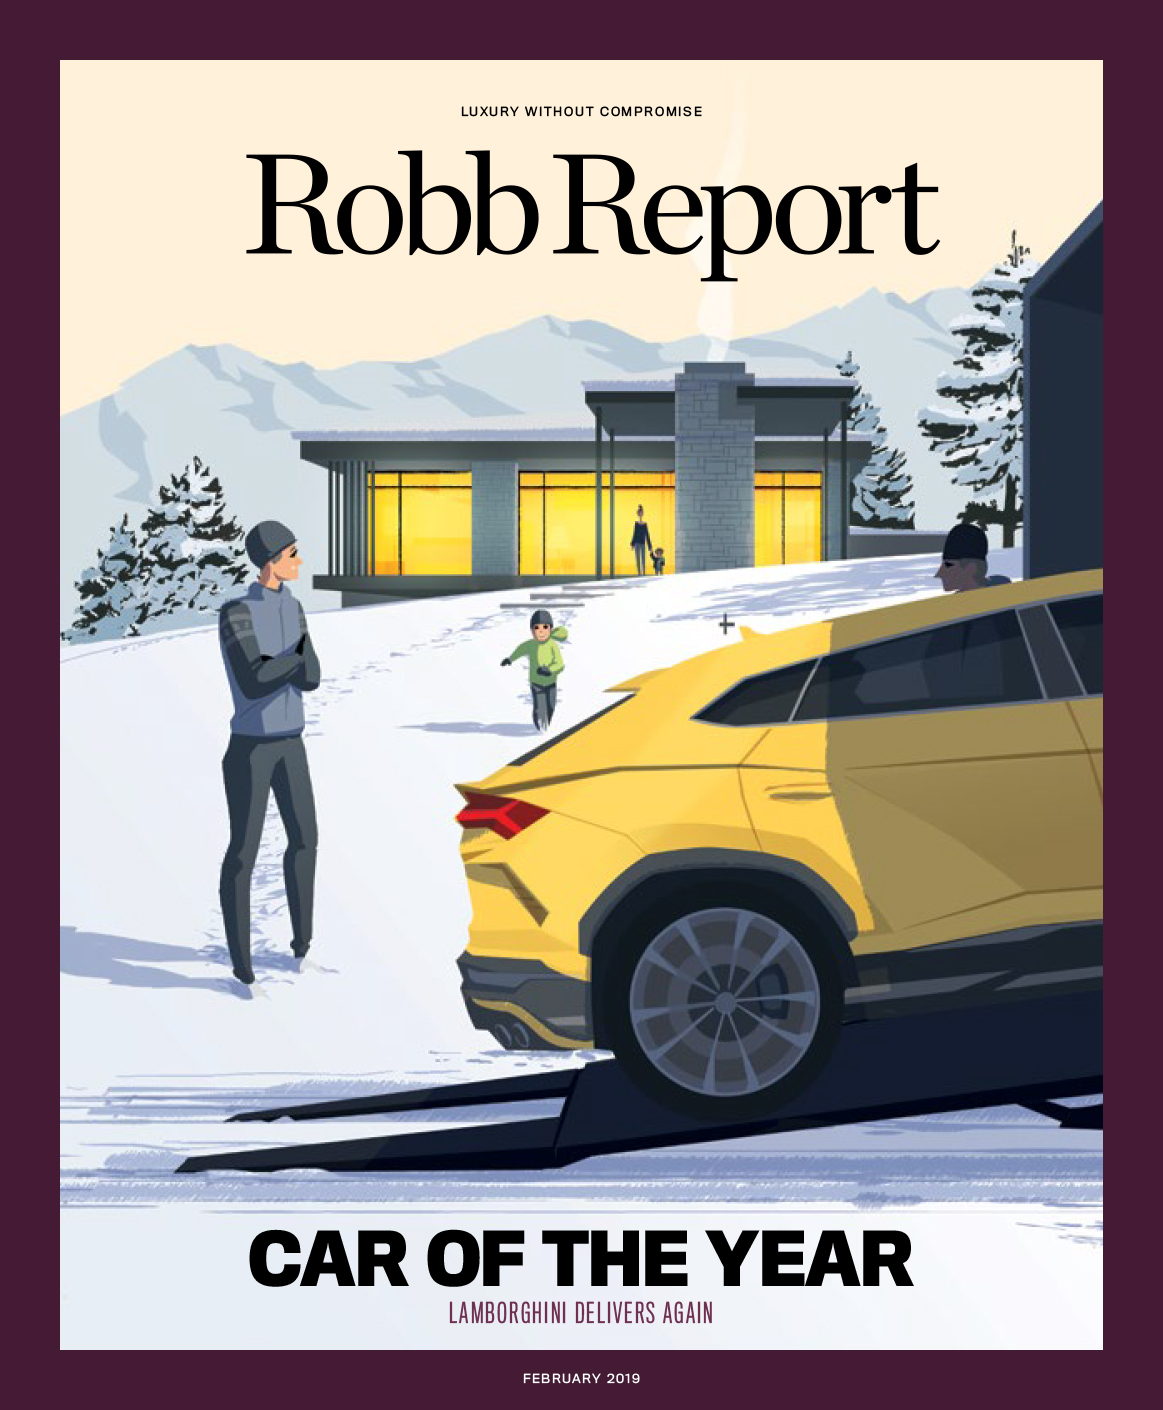 With Lamborghini winning for the second year in a row, I thought it would be fun to revisit last year's cover and see our collector and his family receiving the Urus up in their mountain home. Illustration by Mattheiu Forichon